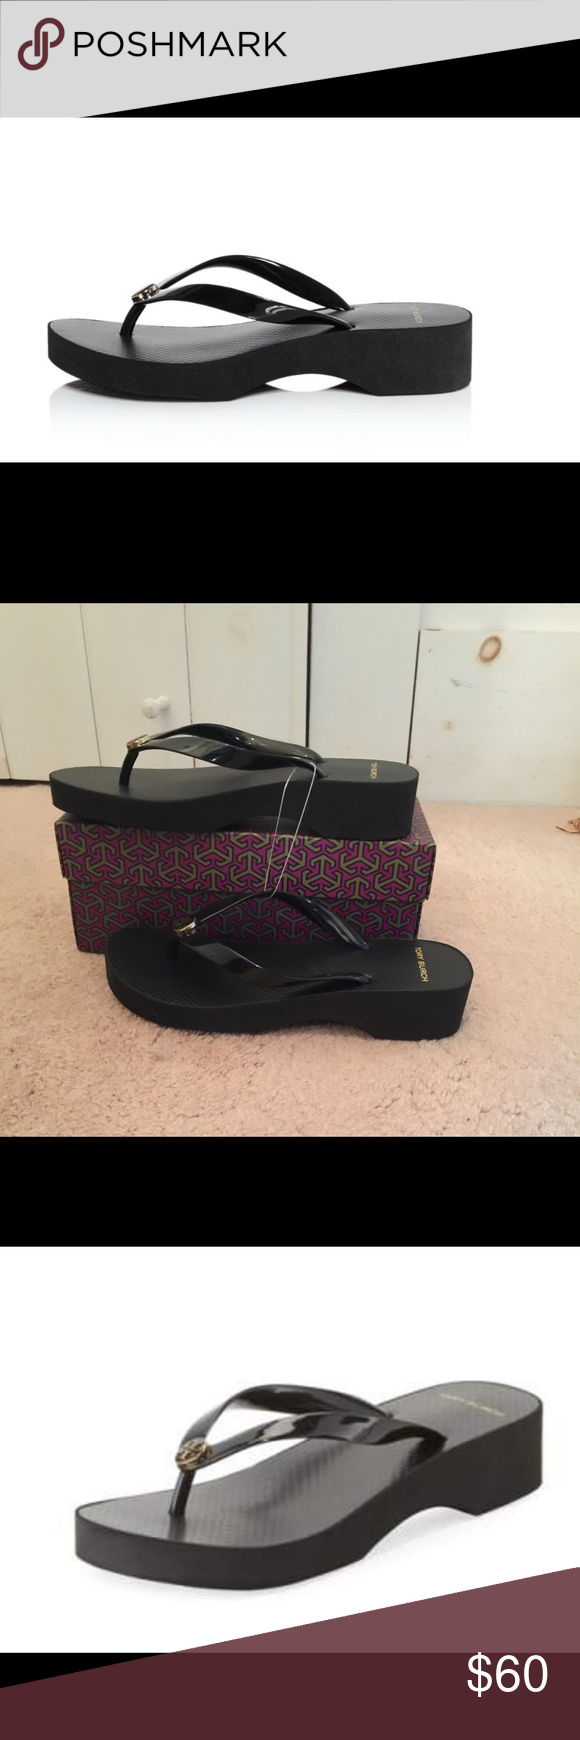 9f1e30d829ae5 Tory Burch Cut Out Wedge Flip Flop % authentic Tory Burch carved out wedge  flip flop NIB iconic stacked T gold logo medallion on strap.